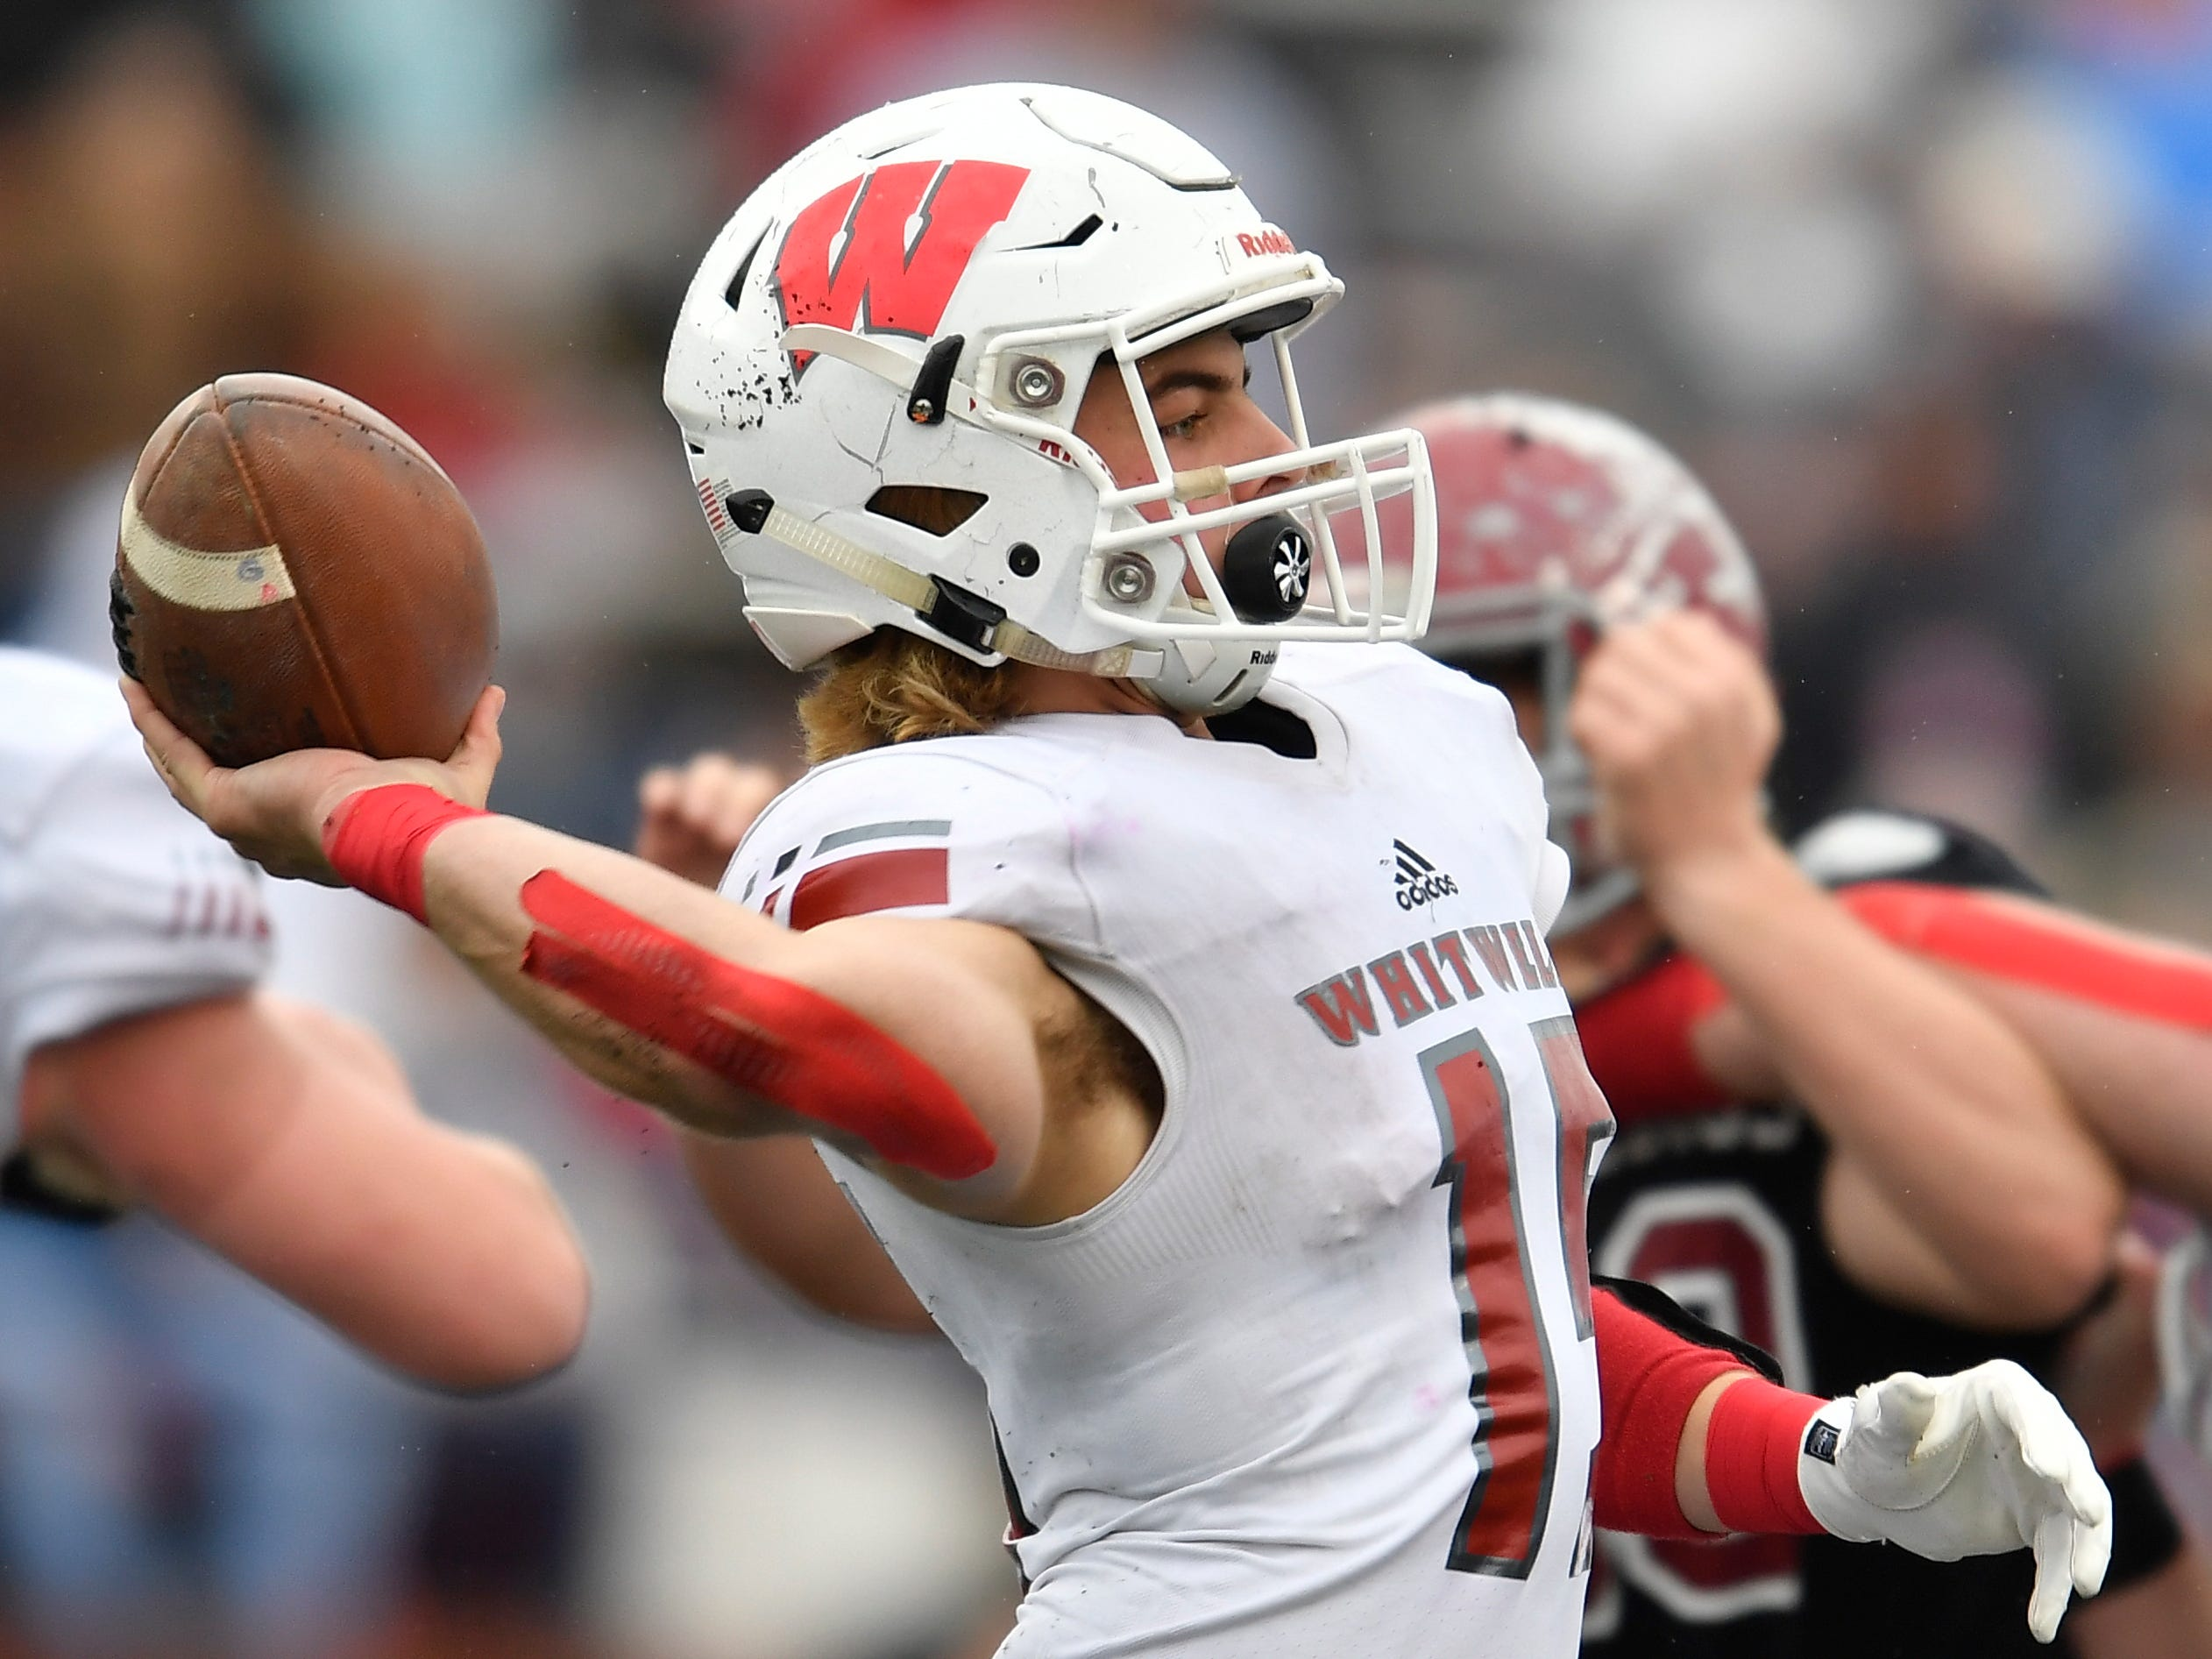 Whitwell quarterback Allen Ashworth (15) throws a pass in the third quarter against Cornersville at the Class I-A BlueCross Bowl state championship at Tennessee Tech's Tucker Stadium in Cookeville, Tenn., on Saturday, Dec. 1, 2018.